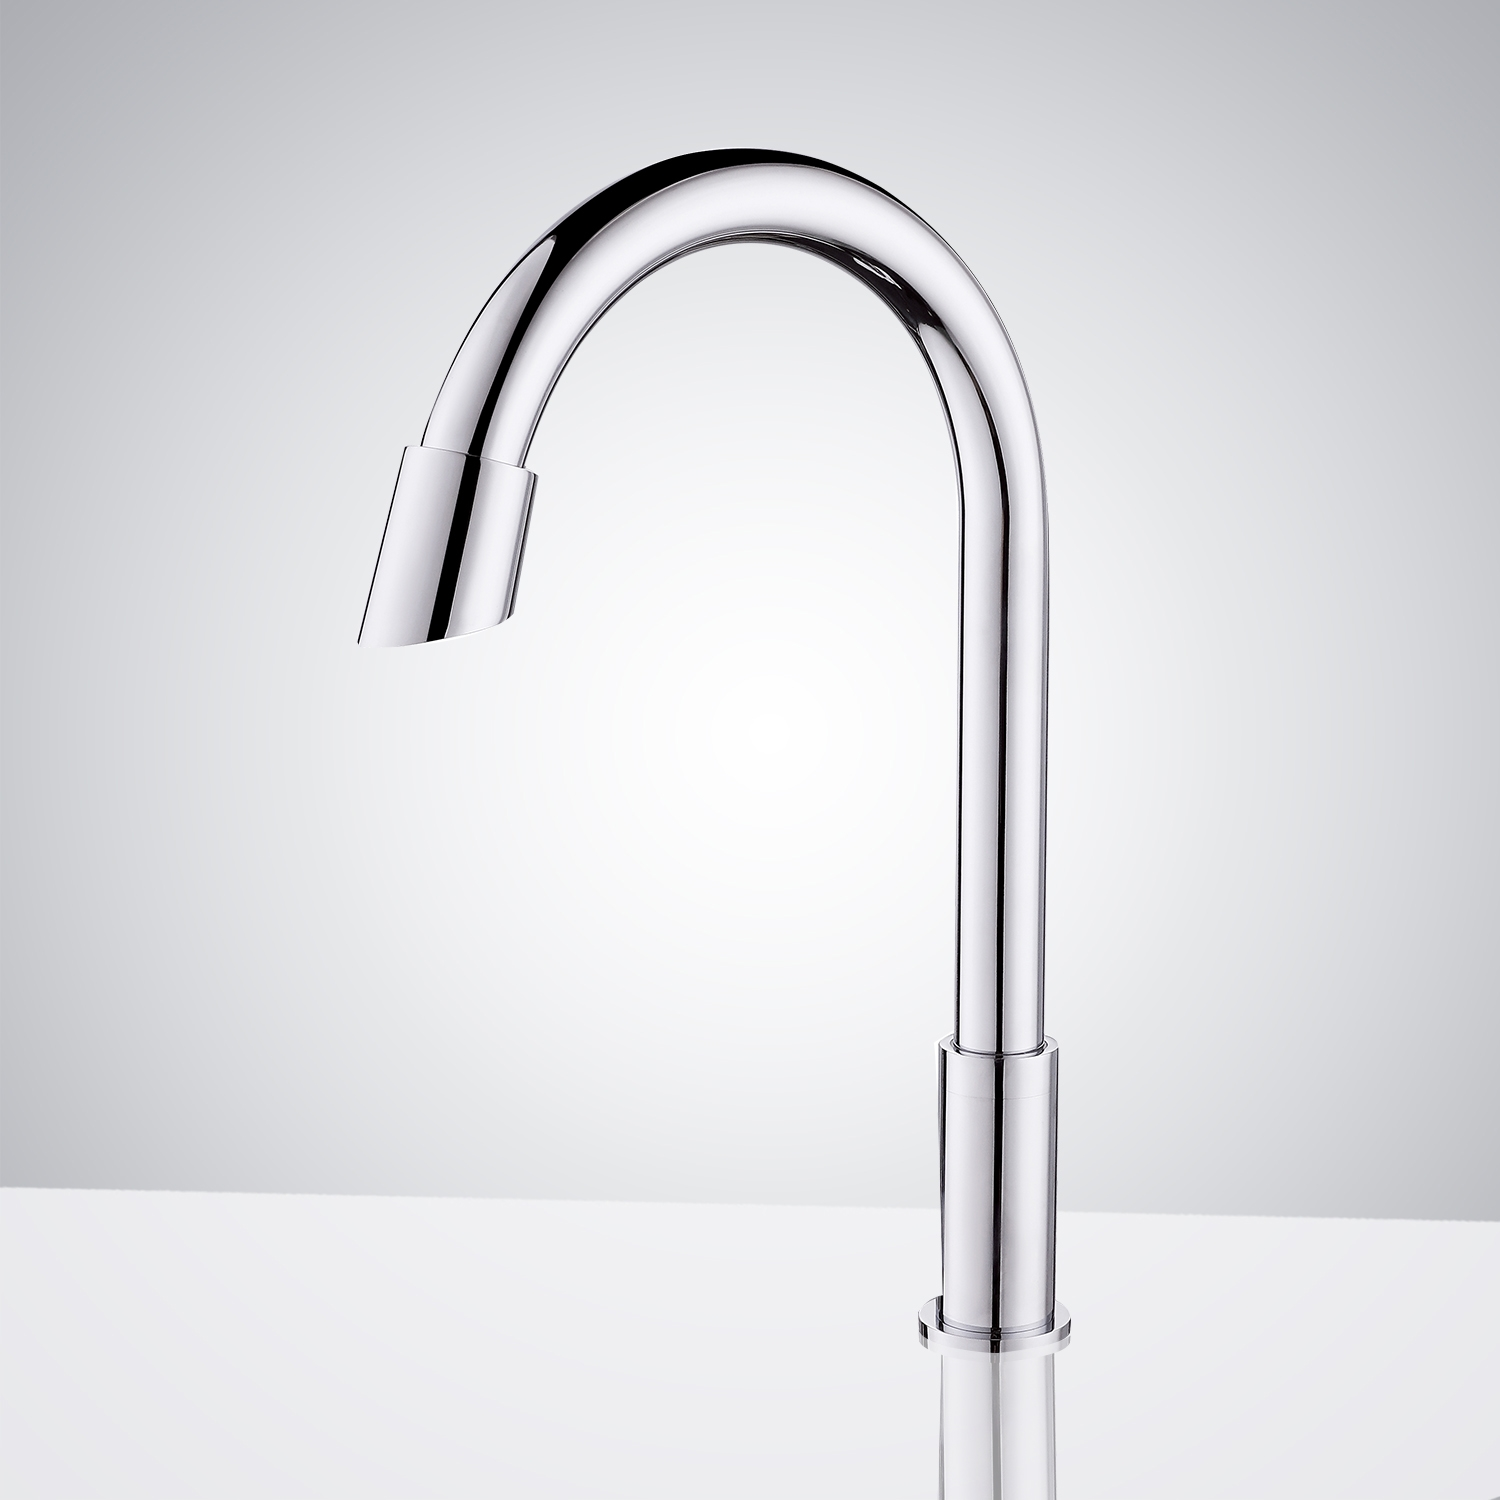 Fontana Rio Commercial Goose Neck Touchless Automatic Sensor Faucets Bathroom & Kitchen